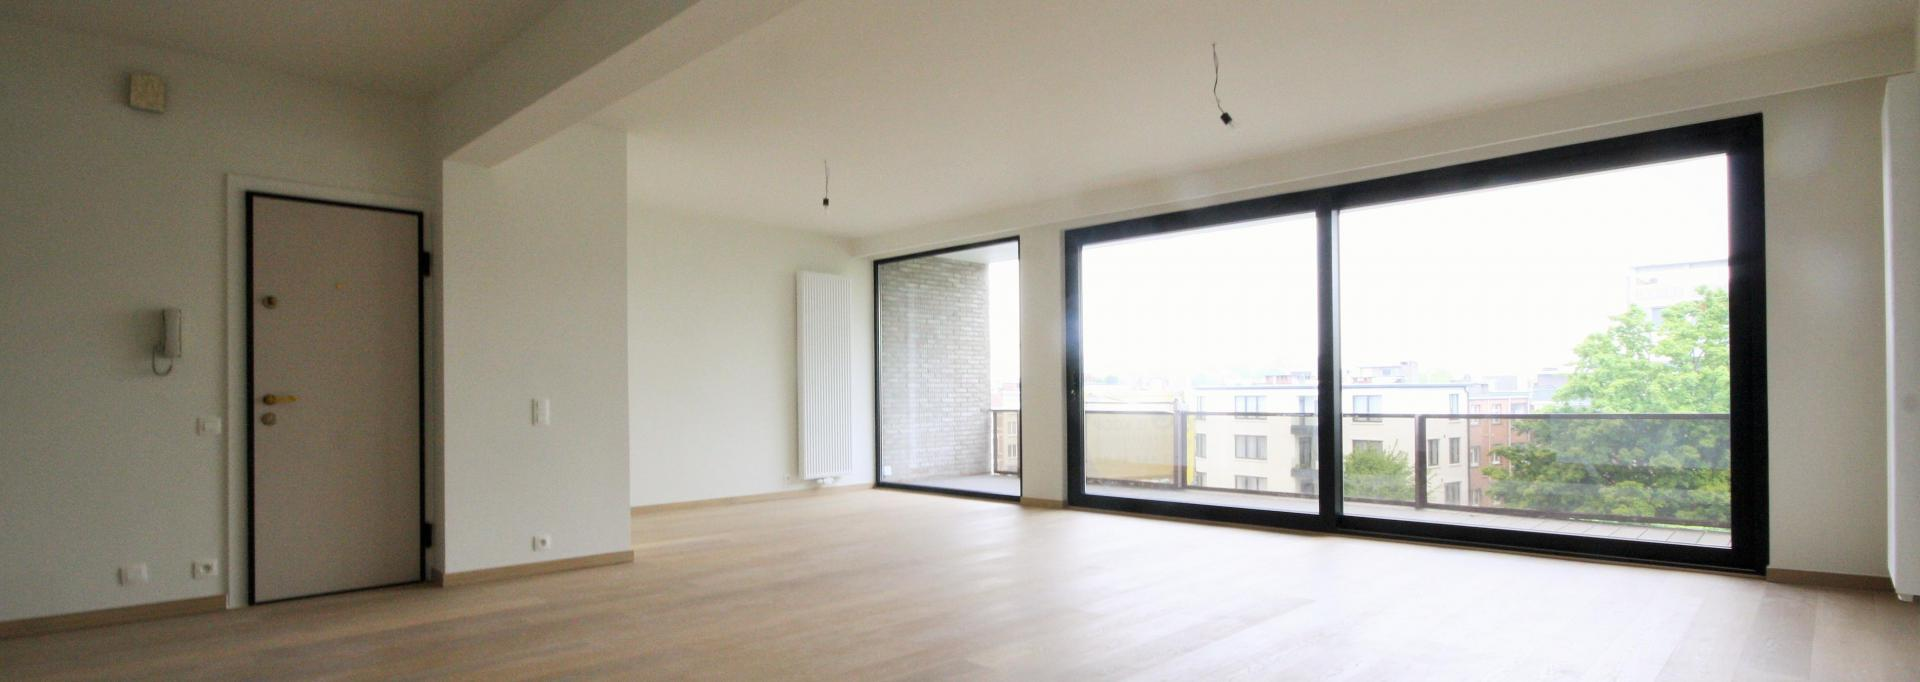 Fruithoflaan - Totale renovatie appartement